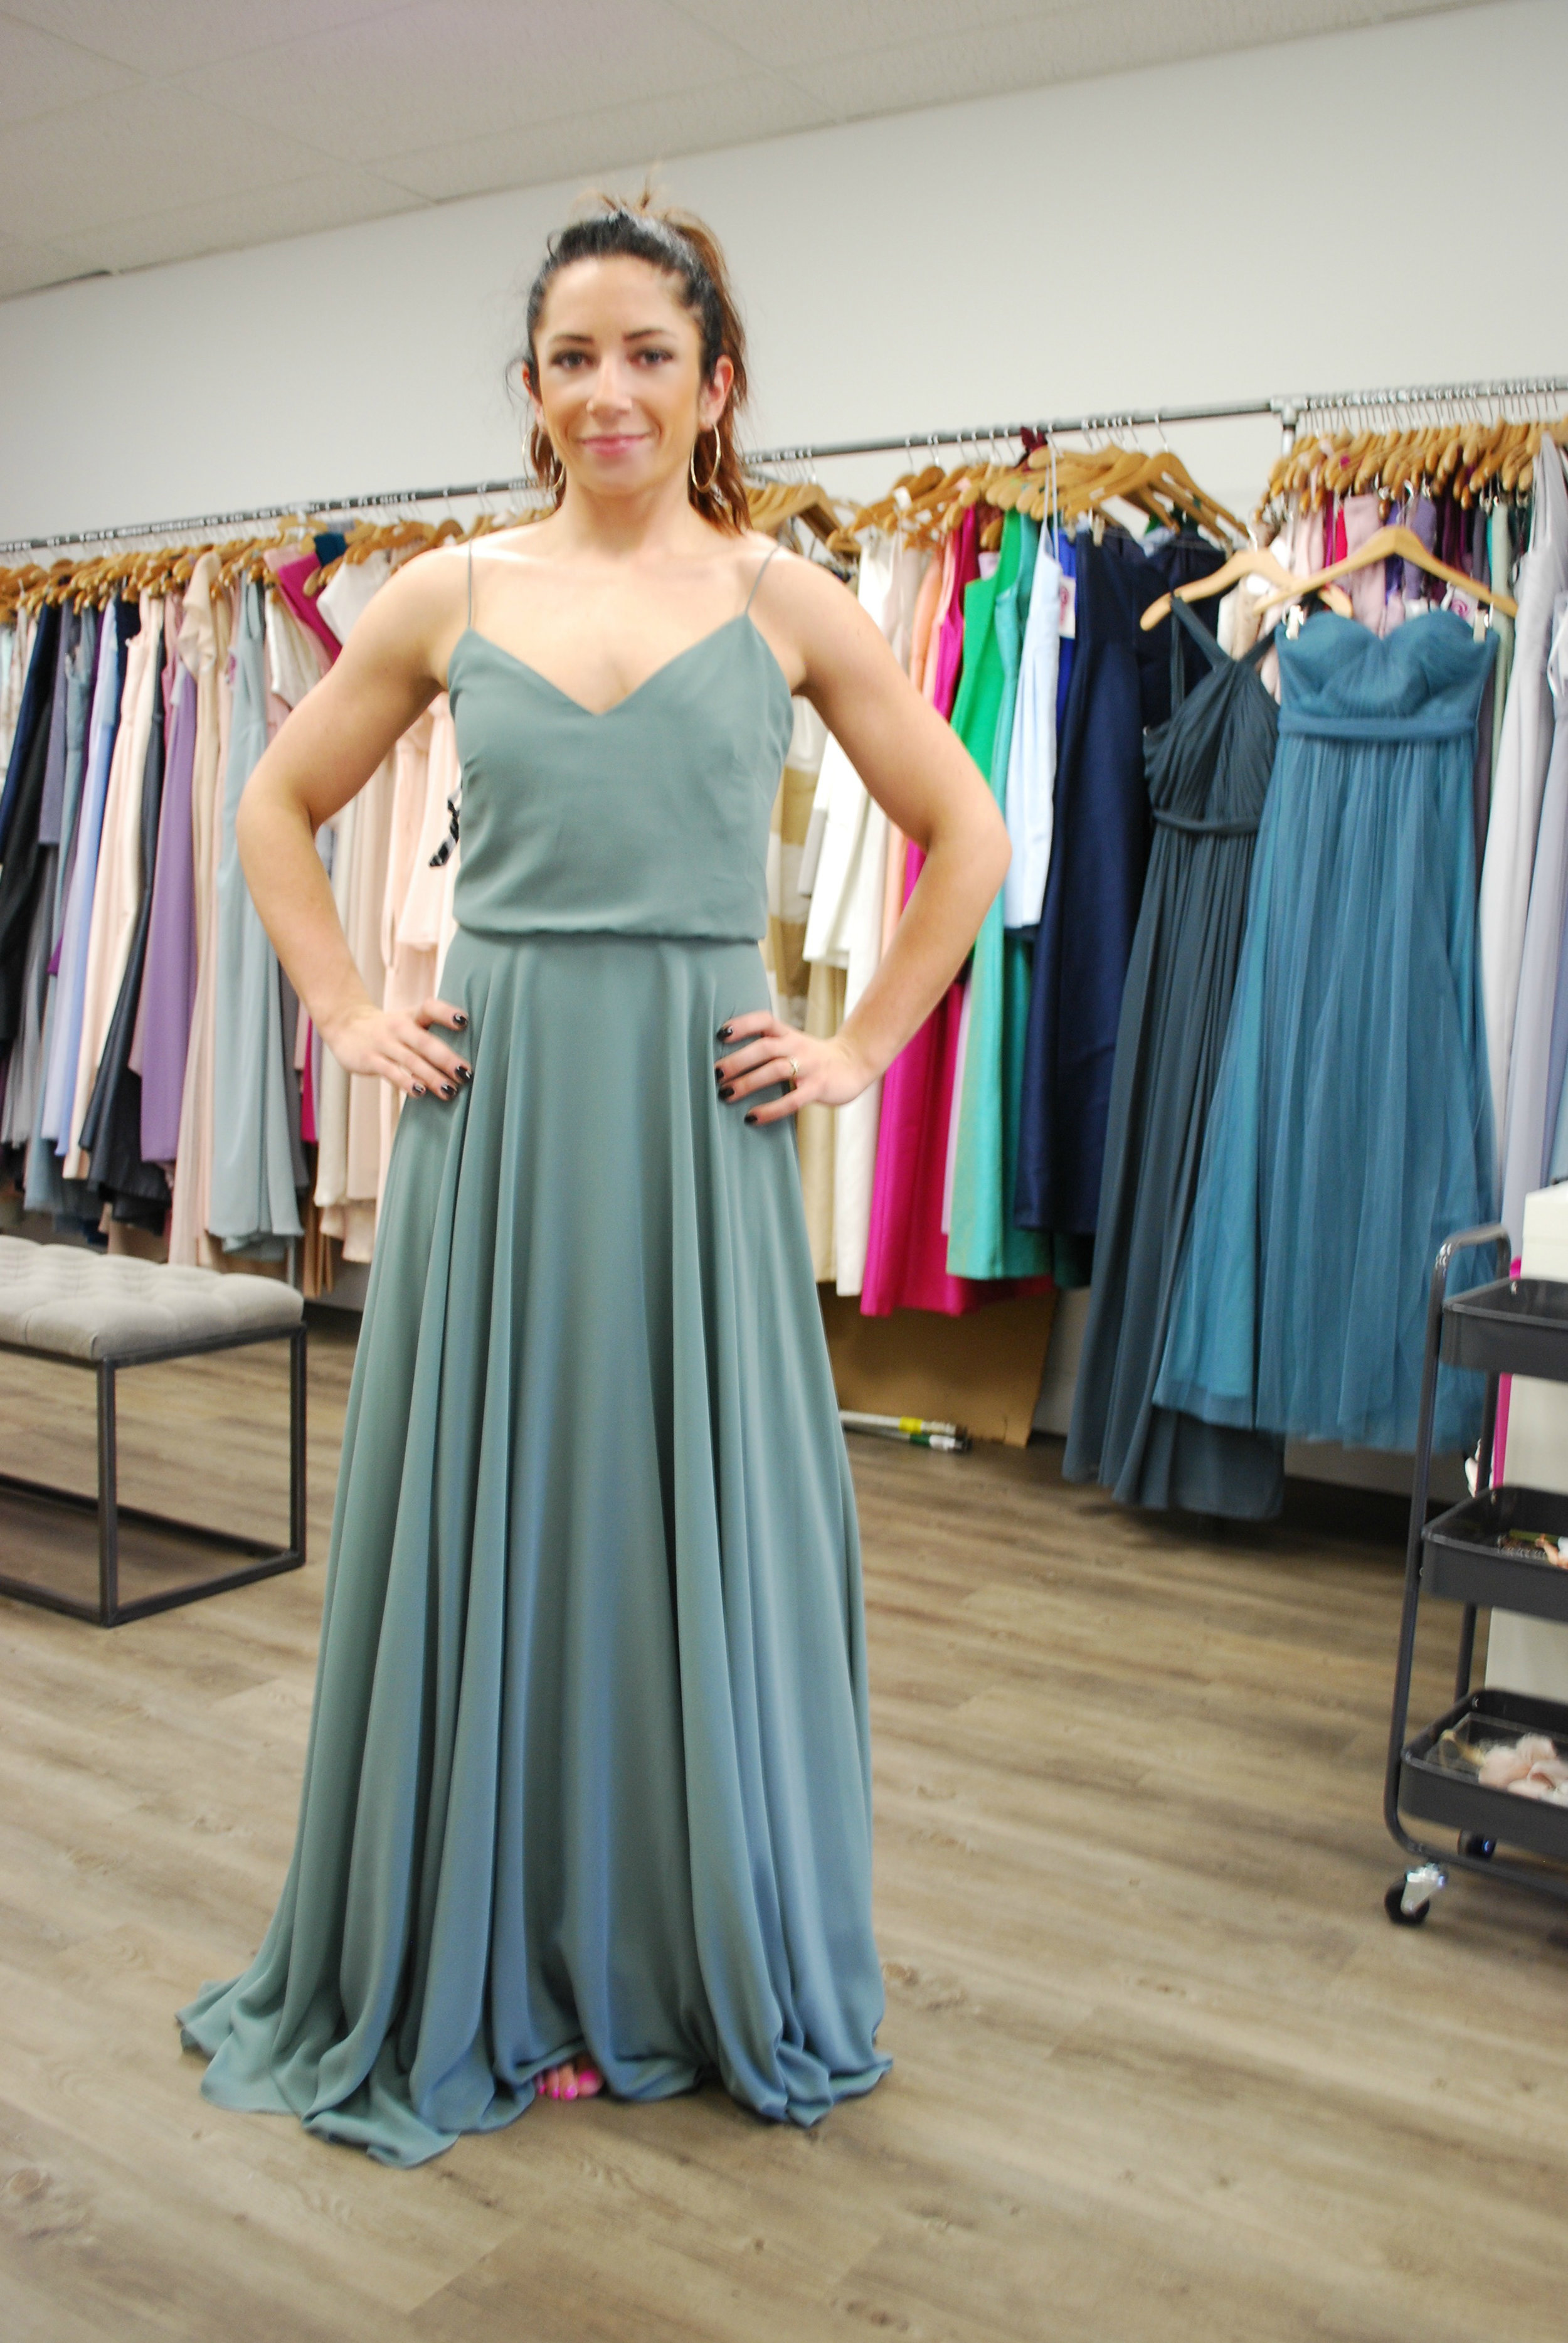 Brielle explored many colors for her fall wedding. She was smart to follow certain colors of other bridal parties on Instagram to see how they would actually photograph before making her decision. Today's designers offer beautiful color selections.